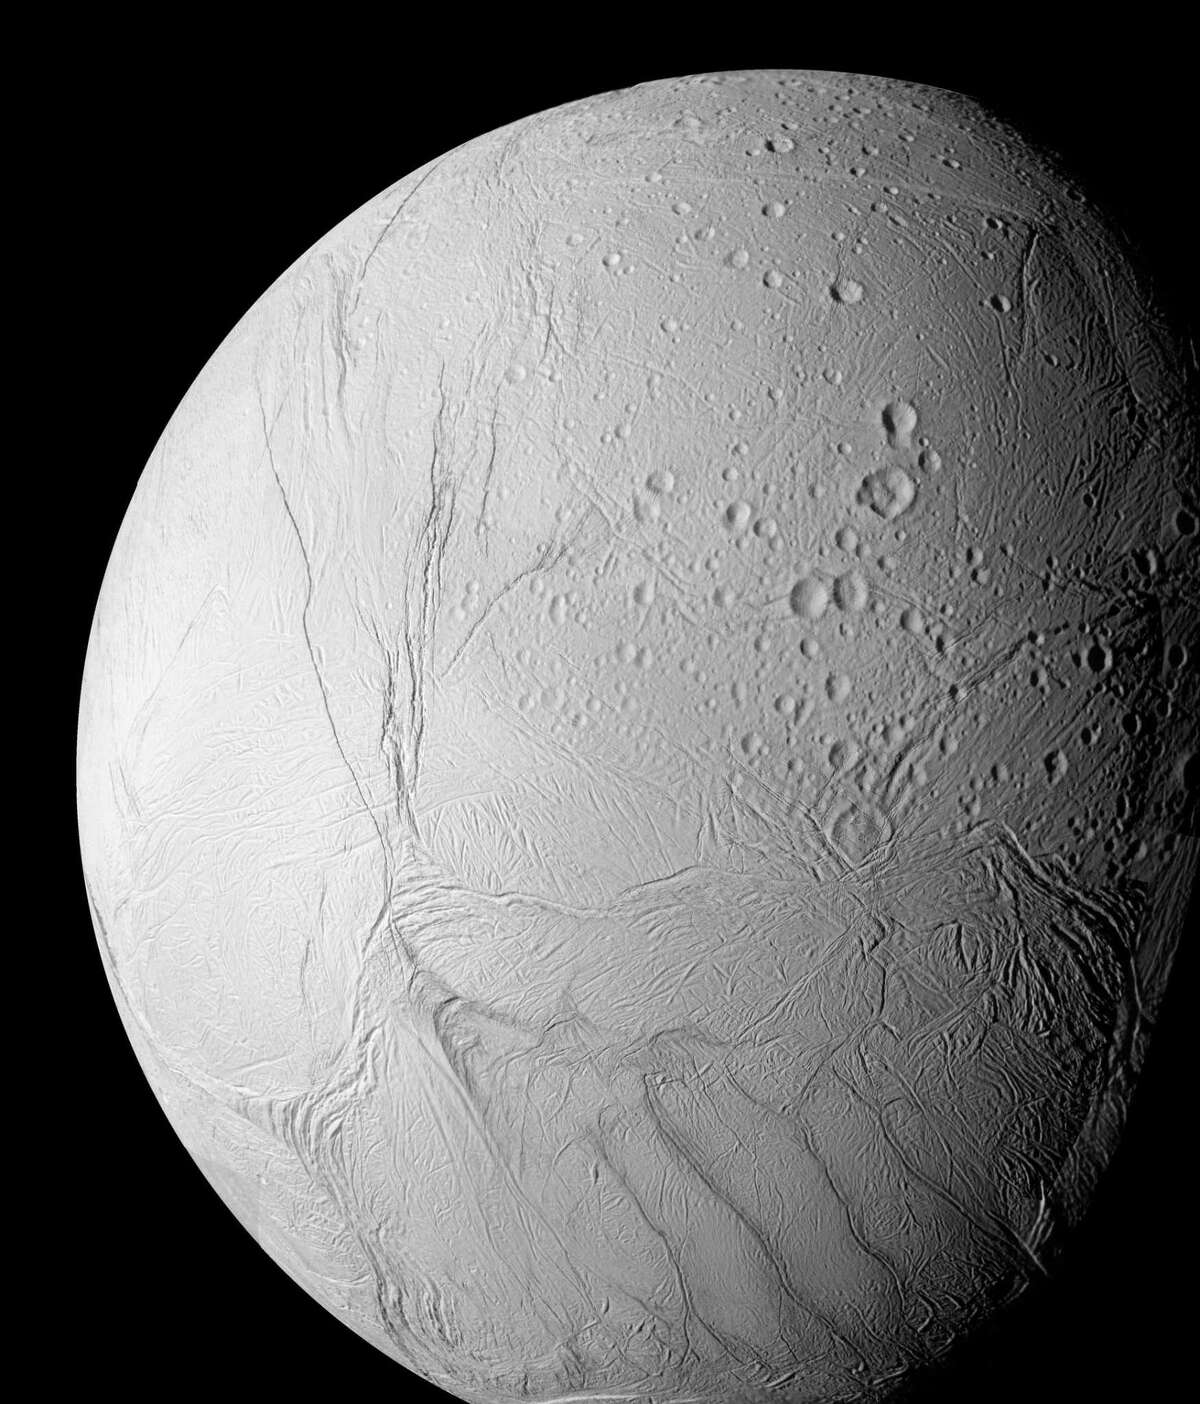 This photo provided by NASA shows the surface of Saturn's moon Enceladus in this photo taken by the Cassini spacecraft. Cassini has found evidence of liquid water spewing from geysers on Enceladus, raising the tantalizing possibility that the celestial object harbors life.